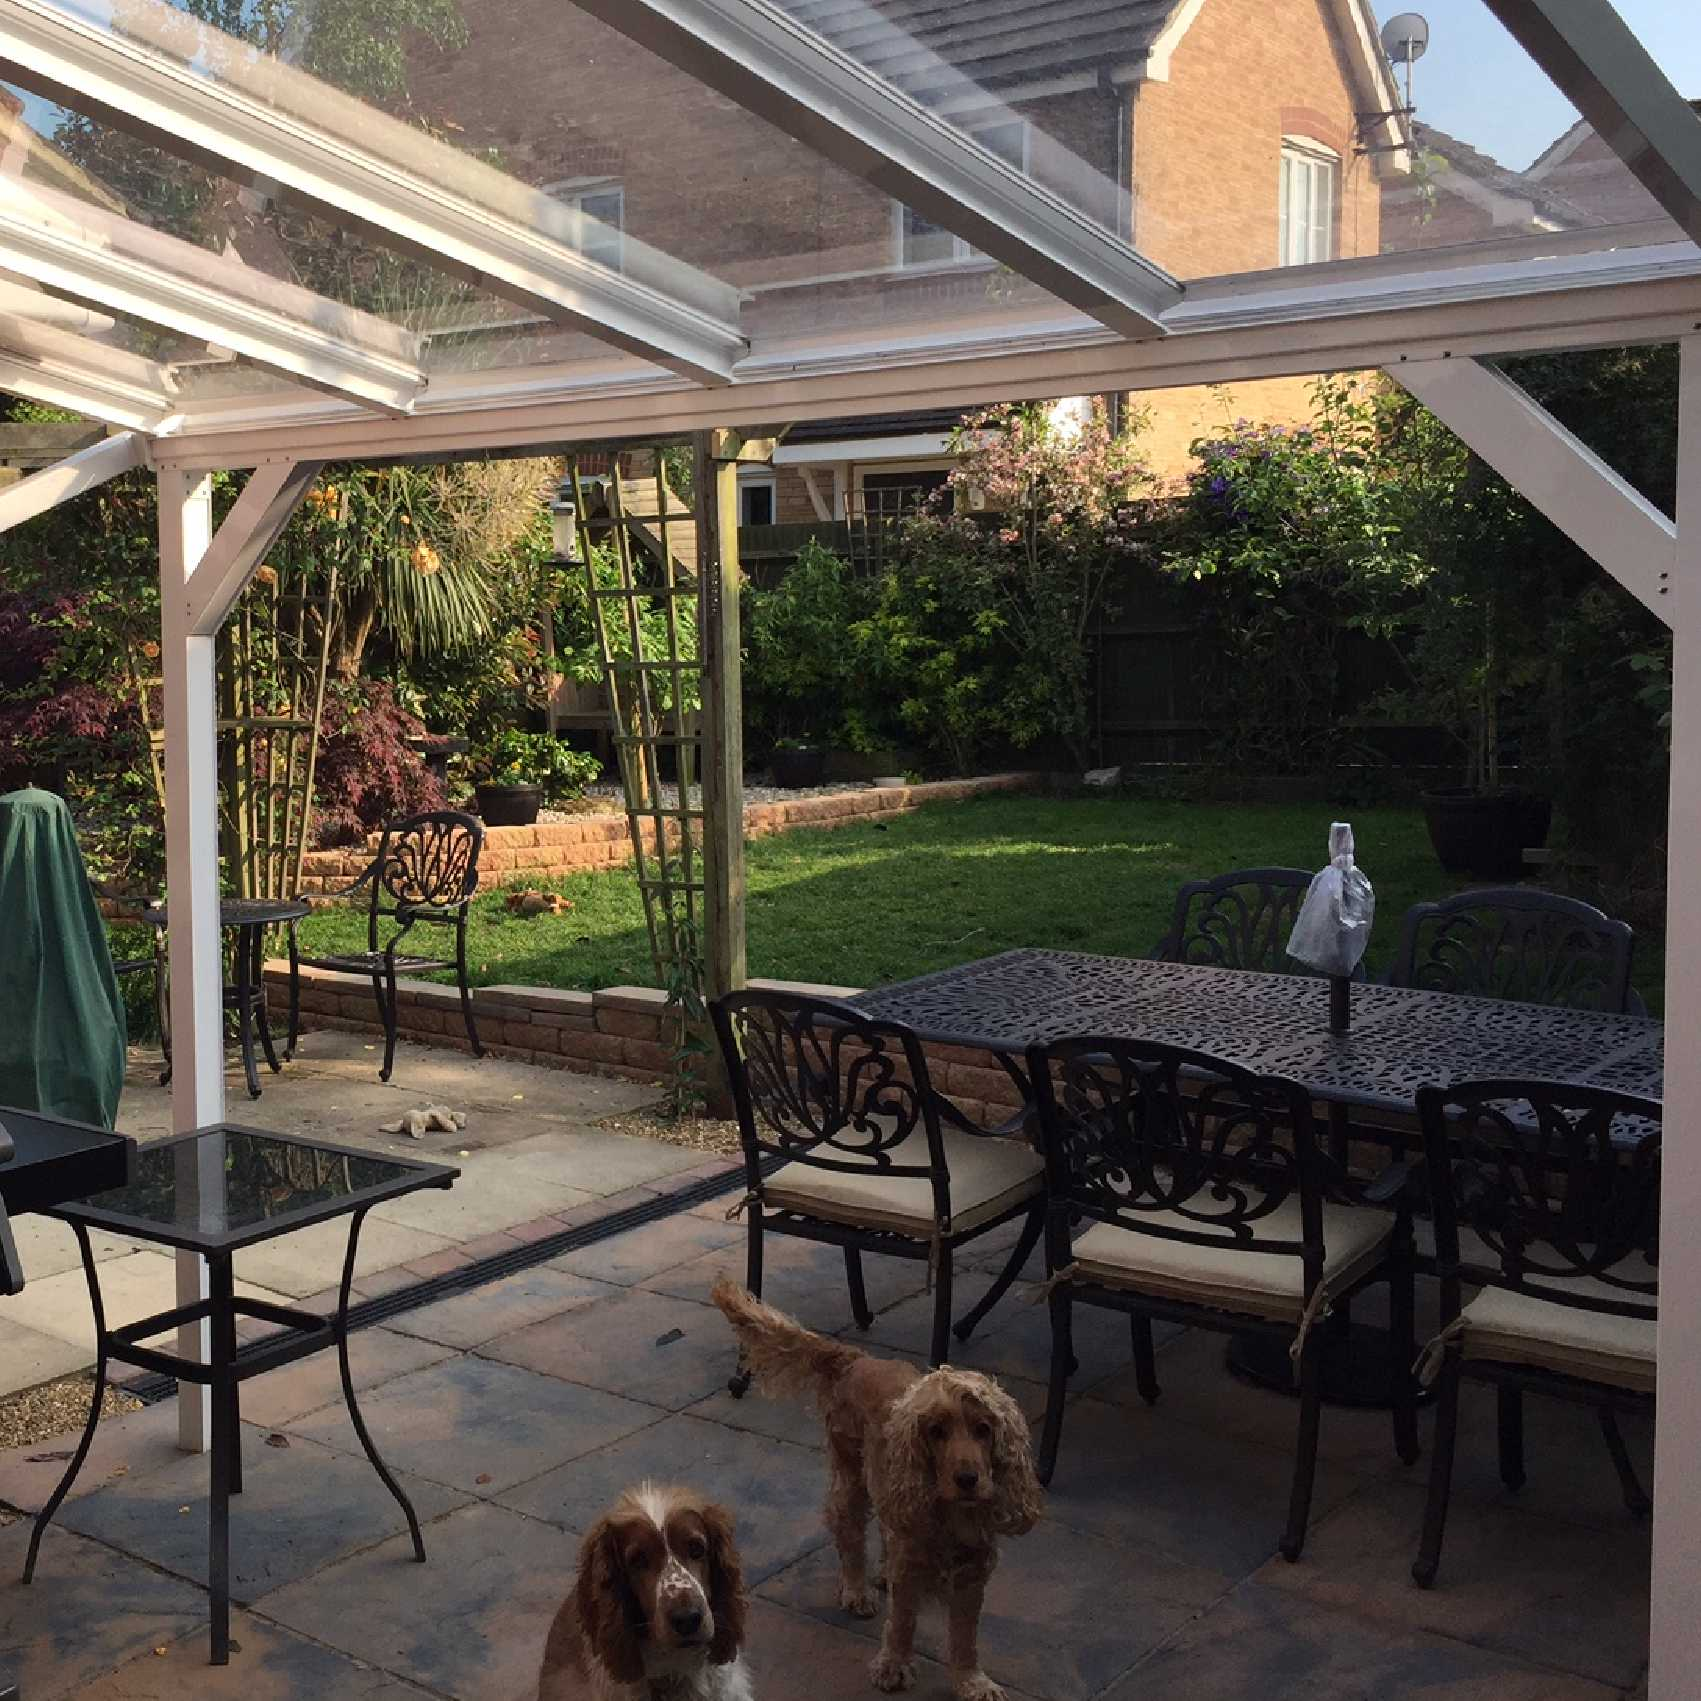 Affordable Omega Smart White Lean-To Canopy with 6mm Glass Clear Plate Polycarbonate Glazing - 10.5m (W) x 3.0m (P), (5) Supporting Posts